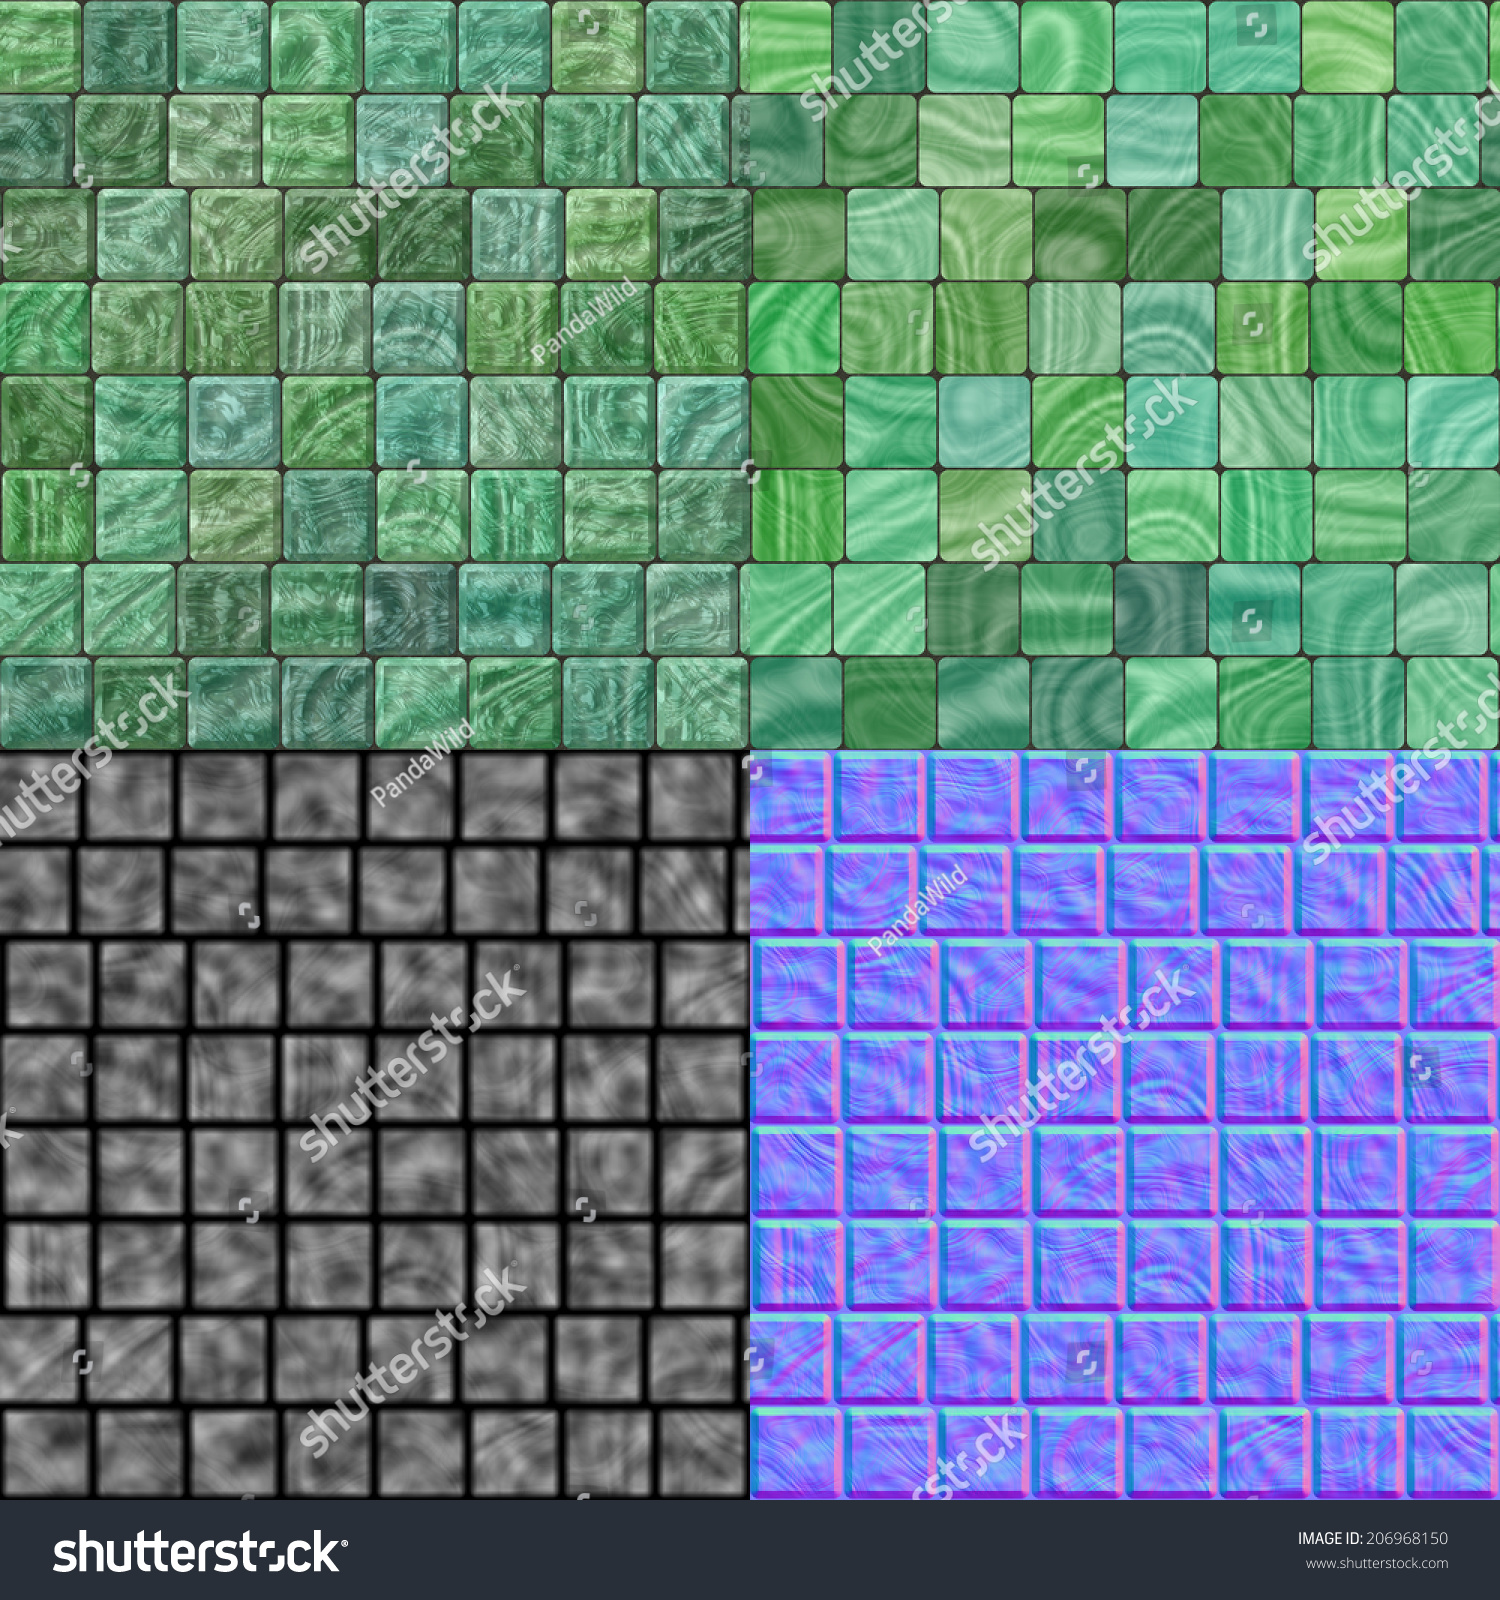 Glass tiles seamless generated hires texture stock for Floor normal map